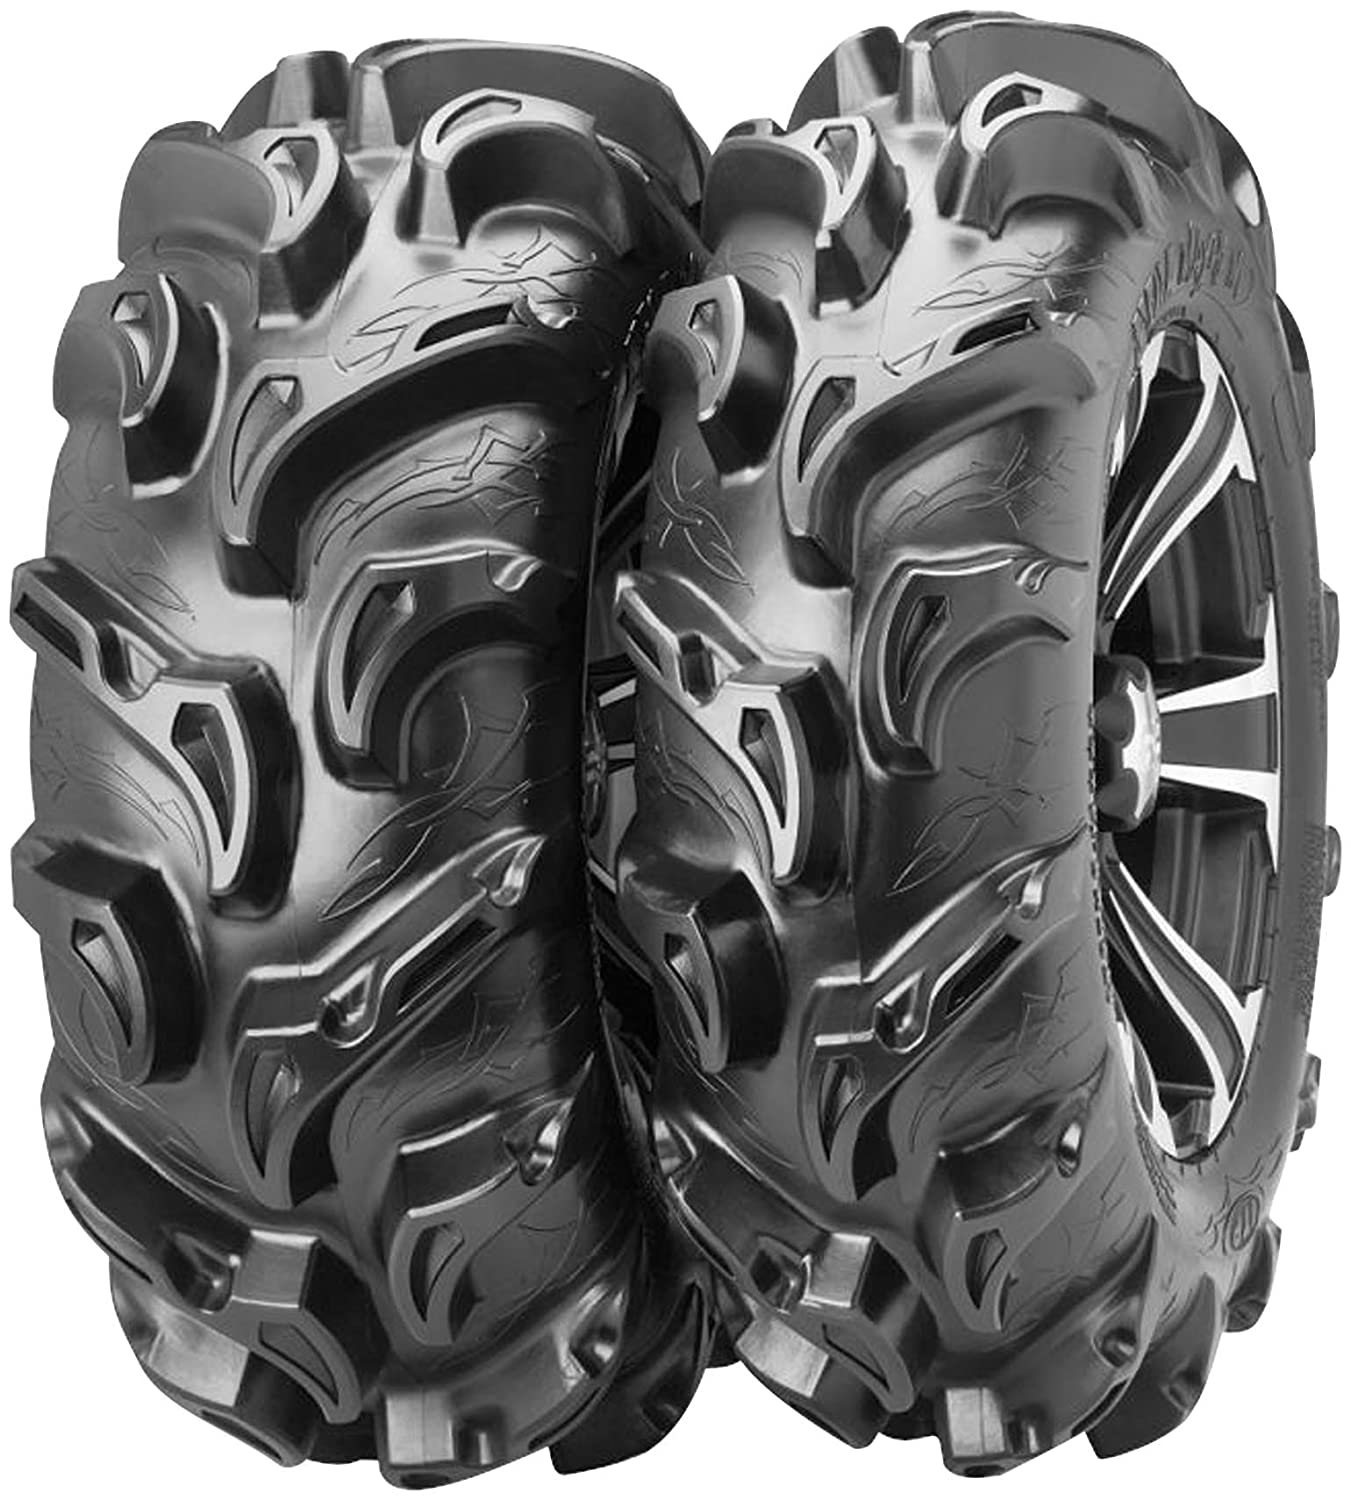 mud tires for sale-ITP Mega Mayhem Mud Terrain ATV Tire